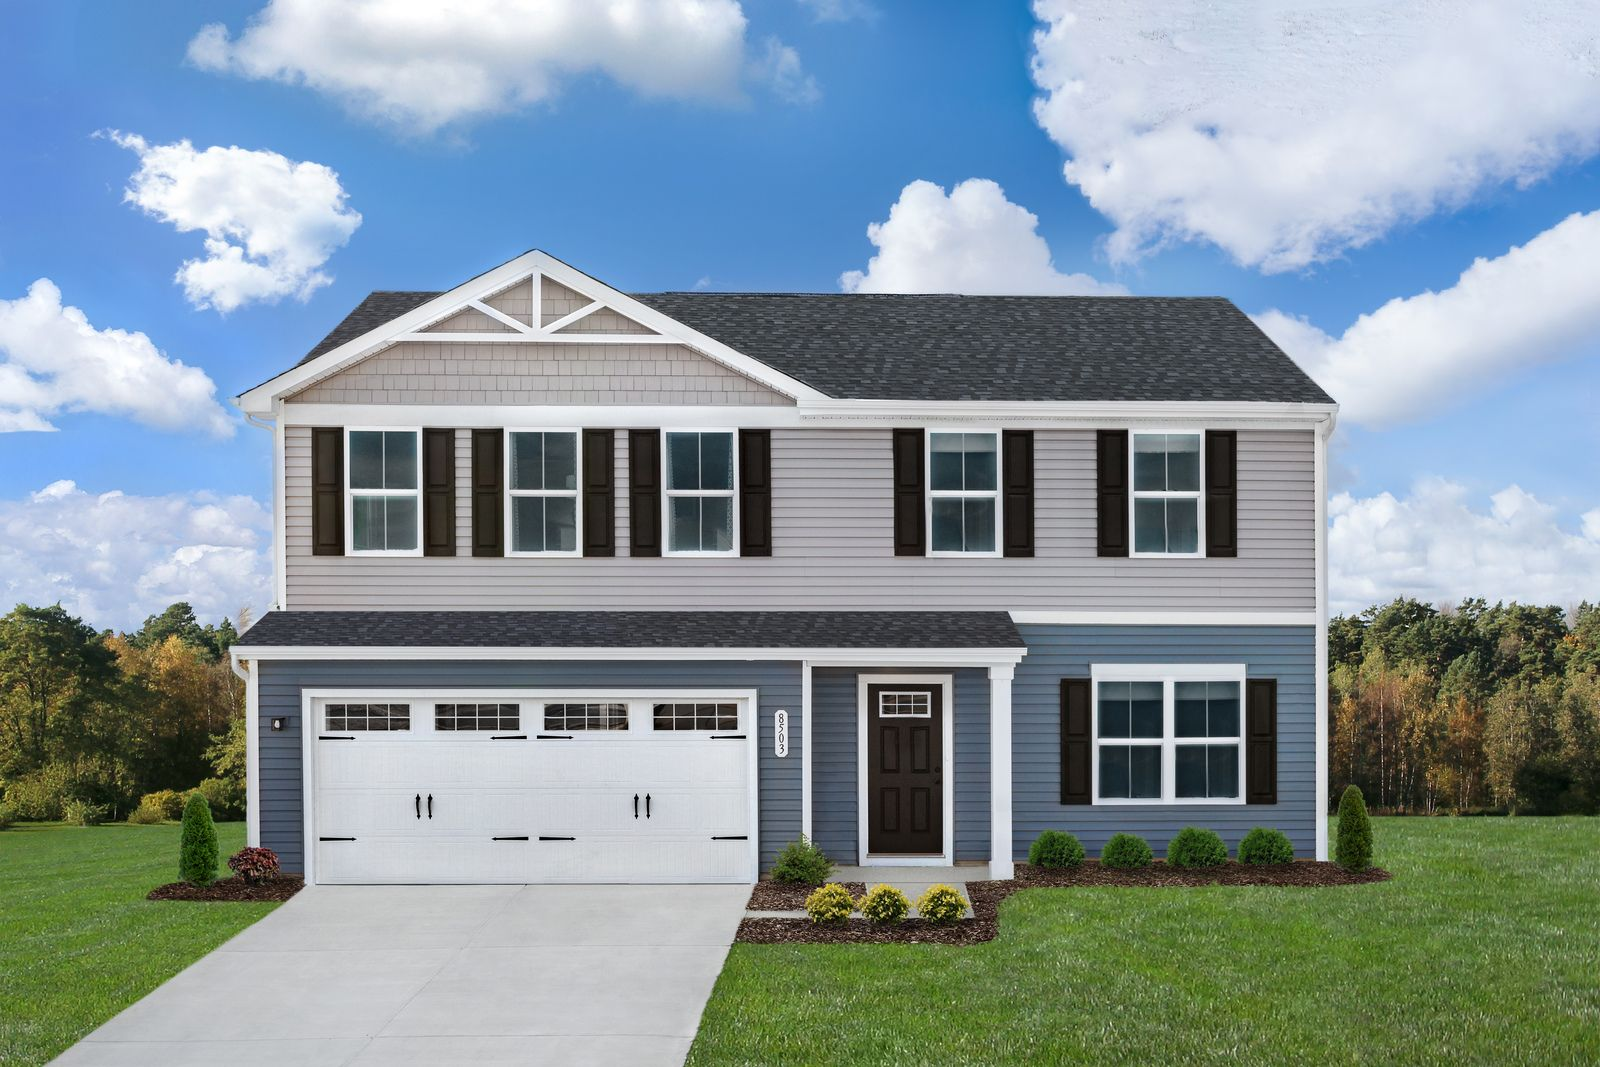 Own for the same or less than renting just 5 miles to downtown Durham:Schedule a visit to tour the model home & get the details on this sought after community!